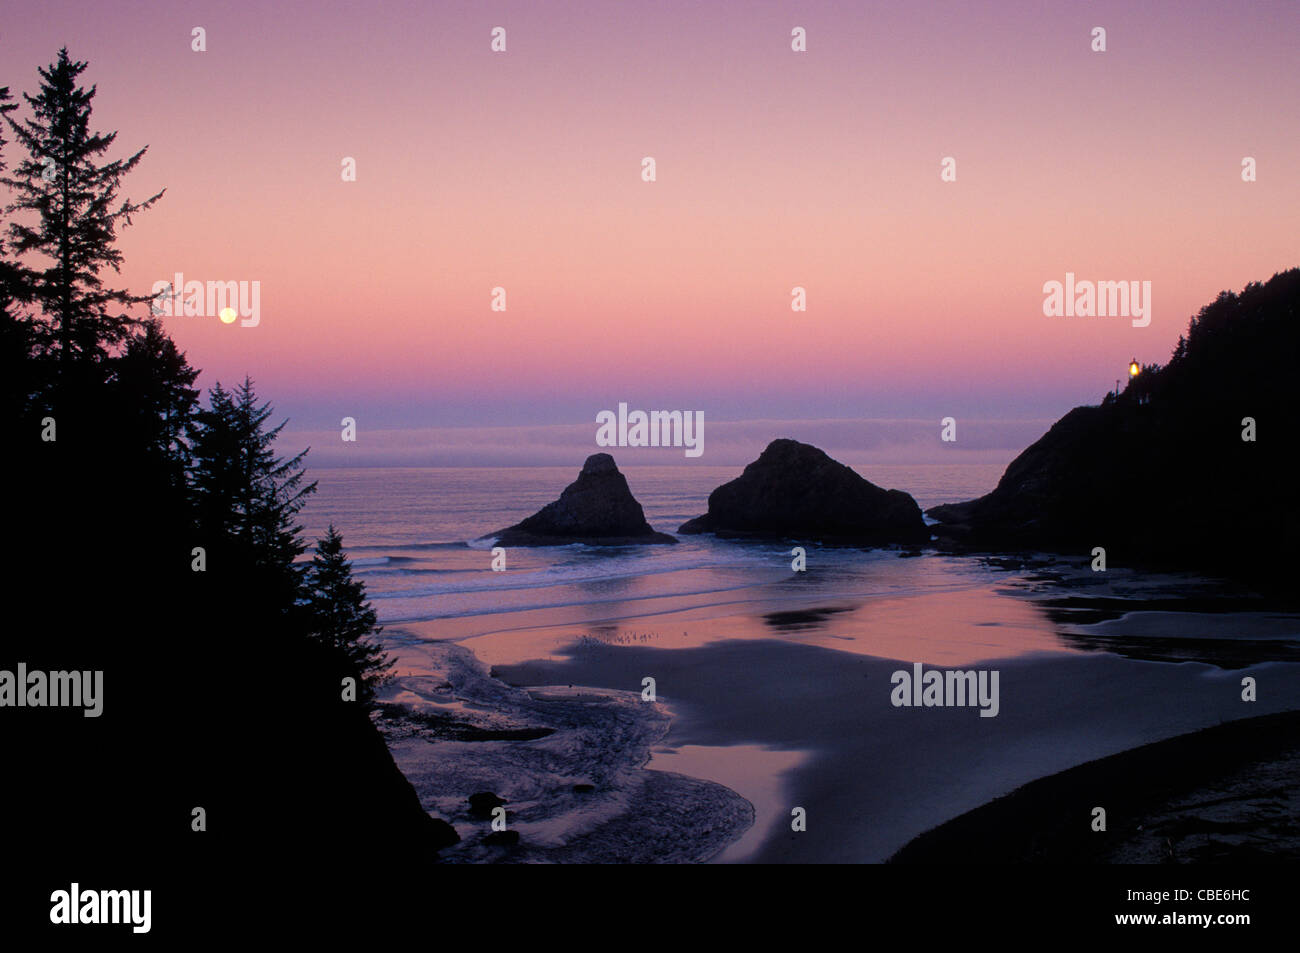 Heceta Head Lighthouse and full moon setting over ocean; Devils Elbow State Park, Oregon coast. - Stock Image